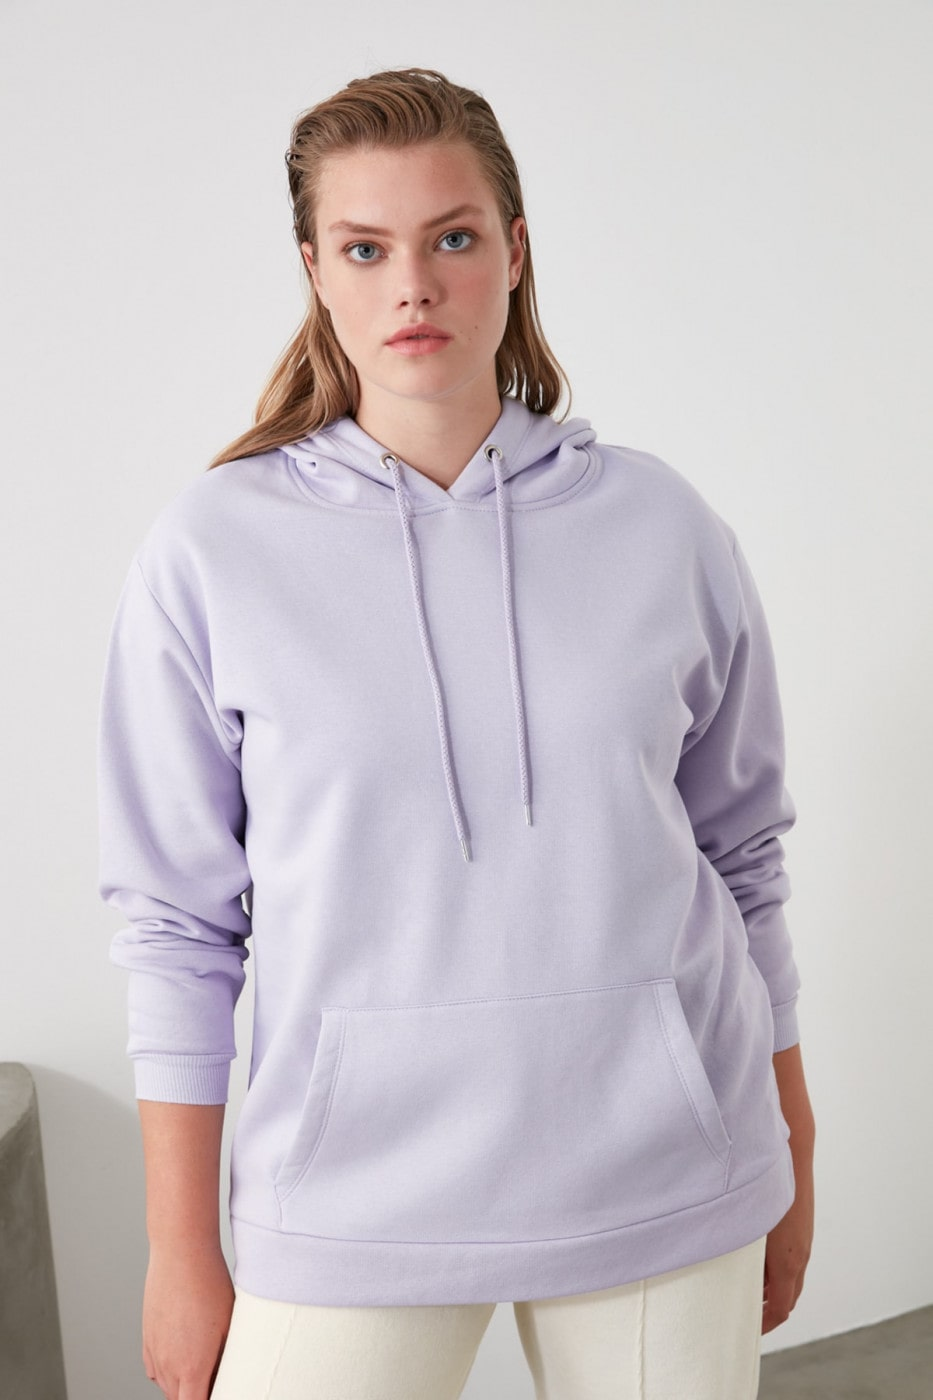 Trendyol Lila Kangaroo PocketHood Boyfriend Knitted Sweatshirt